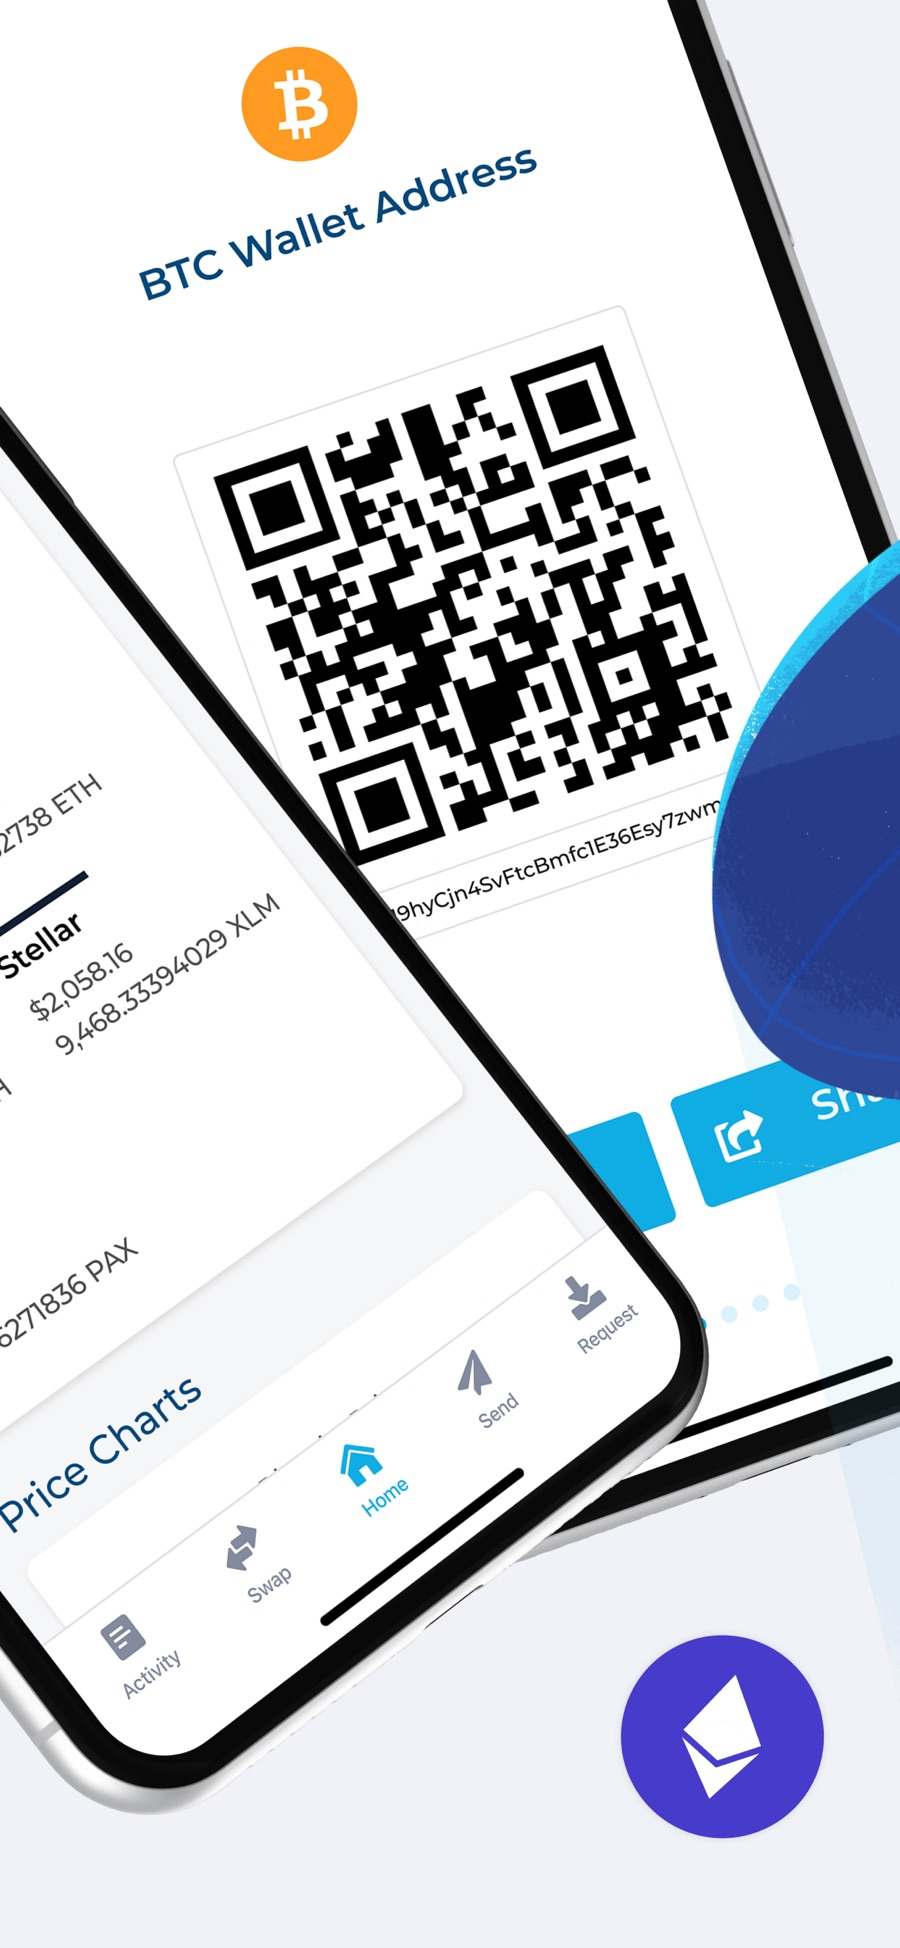 Top 3 Best iOS Wallets to Securely Store Your Bitcoin (BTC